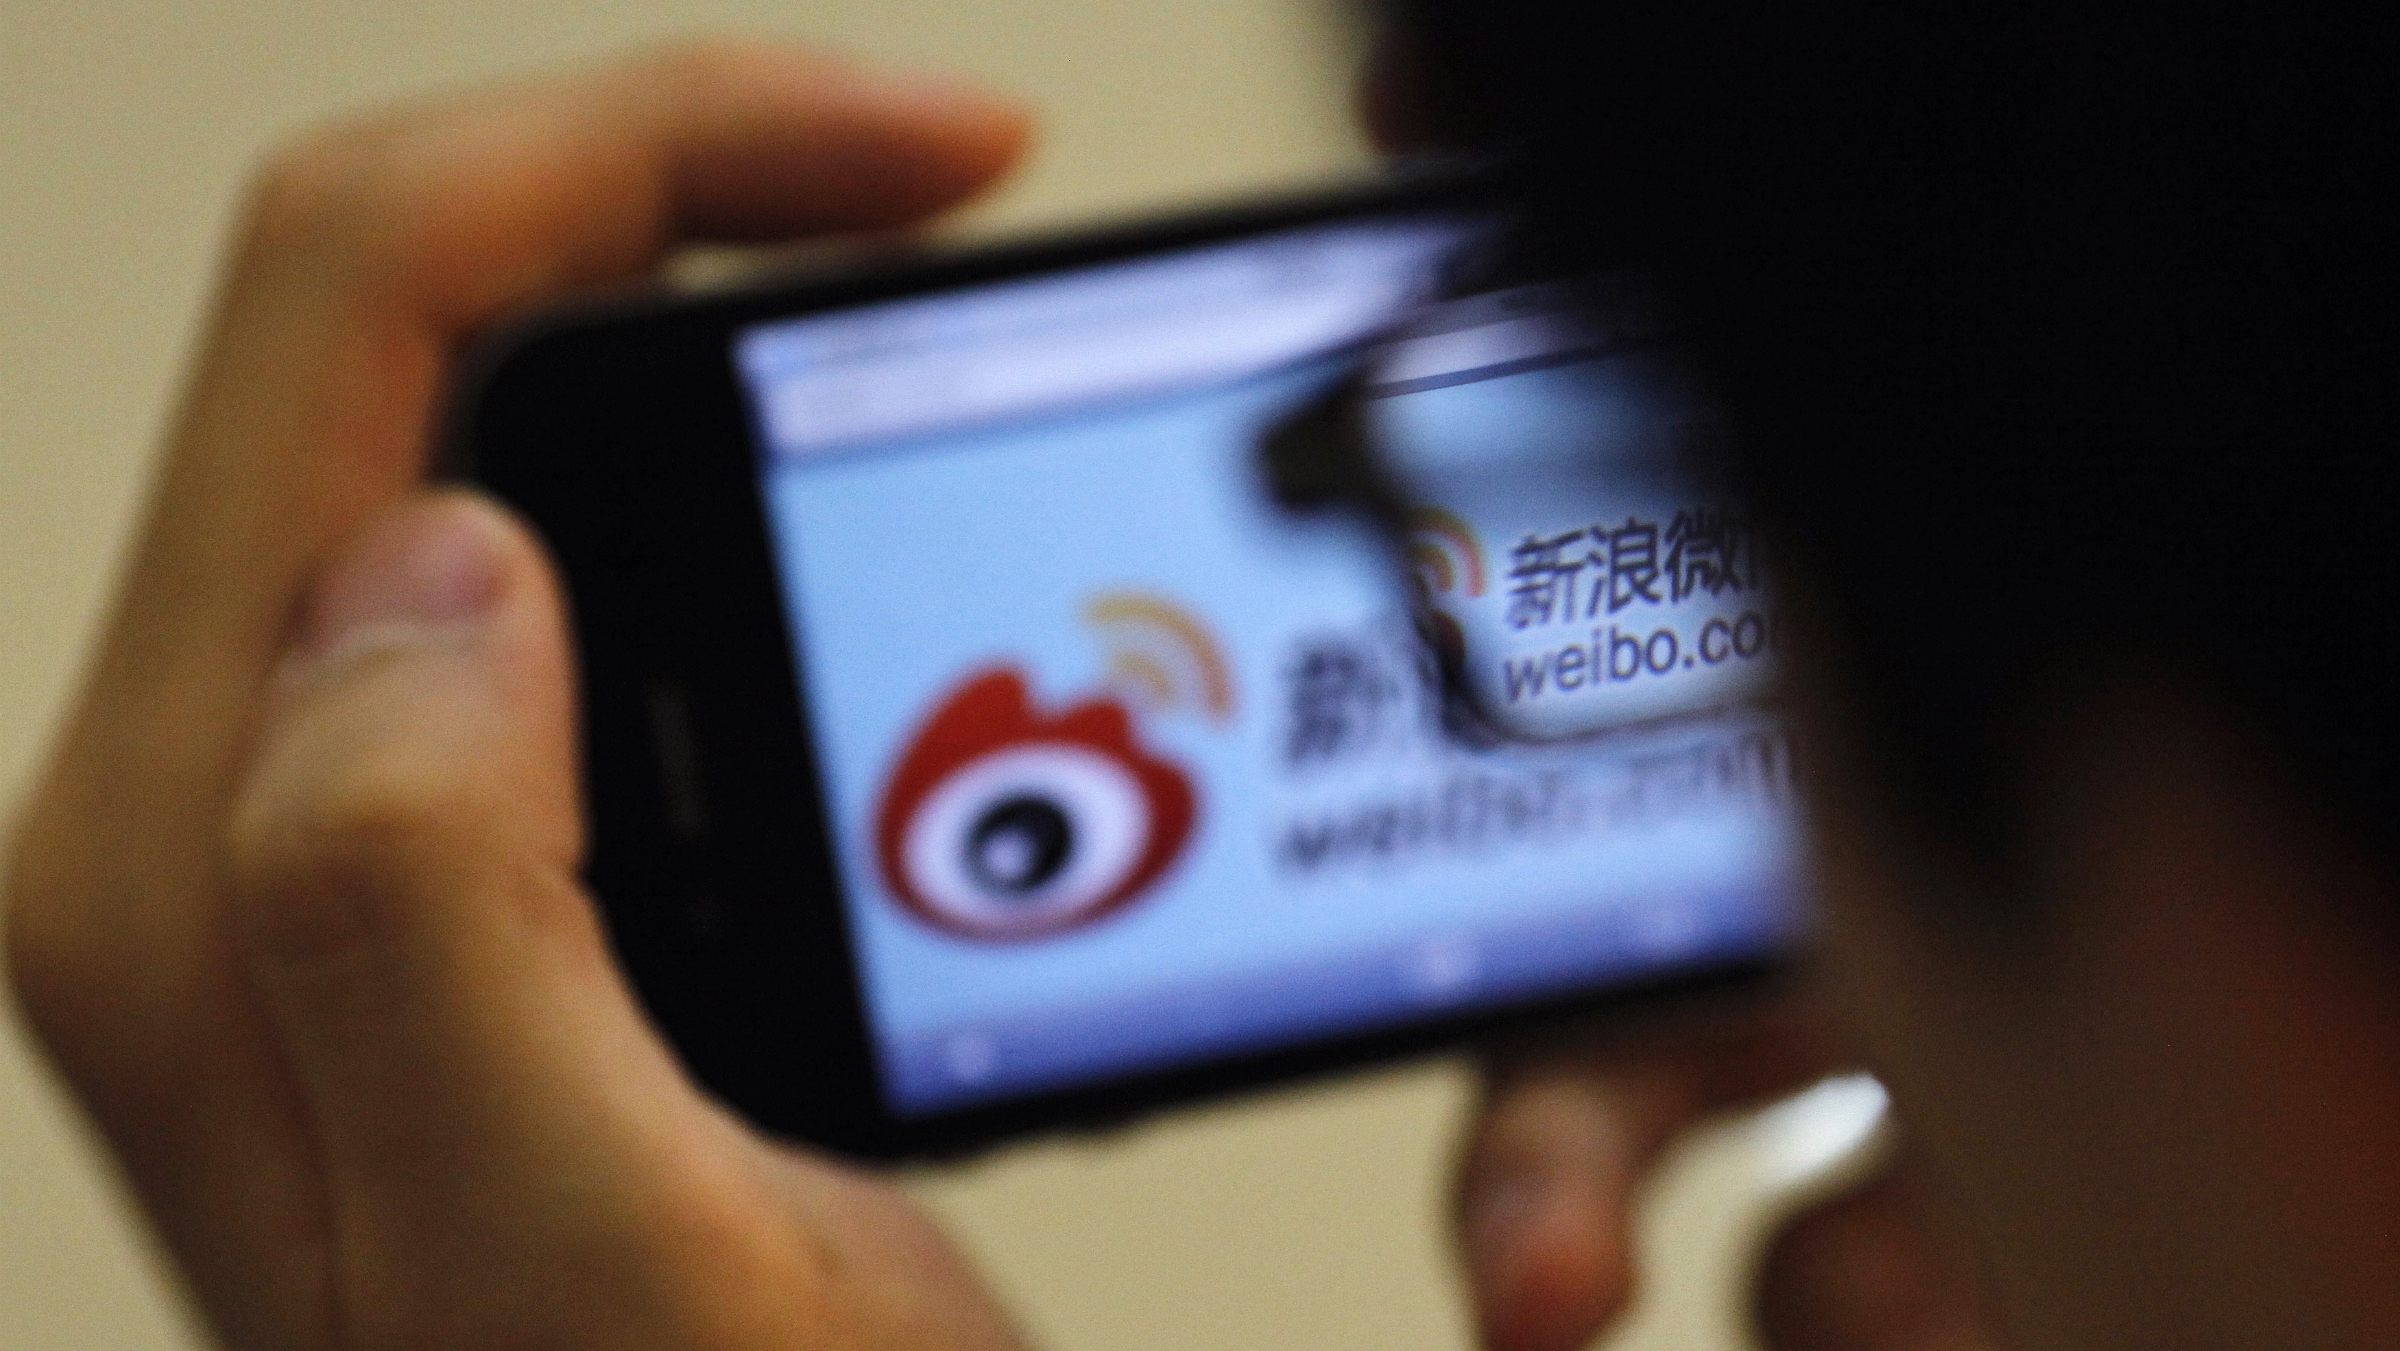 DATE IMPORTED:May 29, 2012A man holds an iPhone as he visits Sina's Weibo microblogging site in Shanghai May 29, 2012. China's Sina Corp has introduced a code of conduct for users of the local version of Twitter amid accusations of censorship to rein in what has grown into a raucous online forum to air political and social grievances. The code of conduct, first announced earlier this month, stipulates that users of Sina's Weibo microblogging site cannot post information that is against the principles of the constitution, cannot harm national unity, disclose state secrets or publish false information, among other rules. REUTERS/Carlos Barria